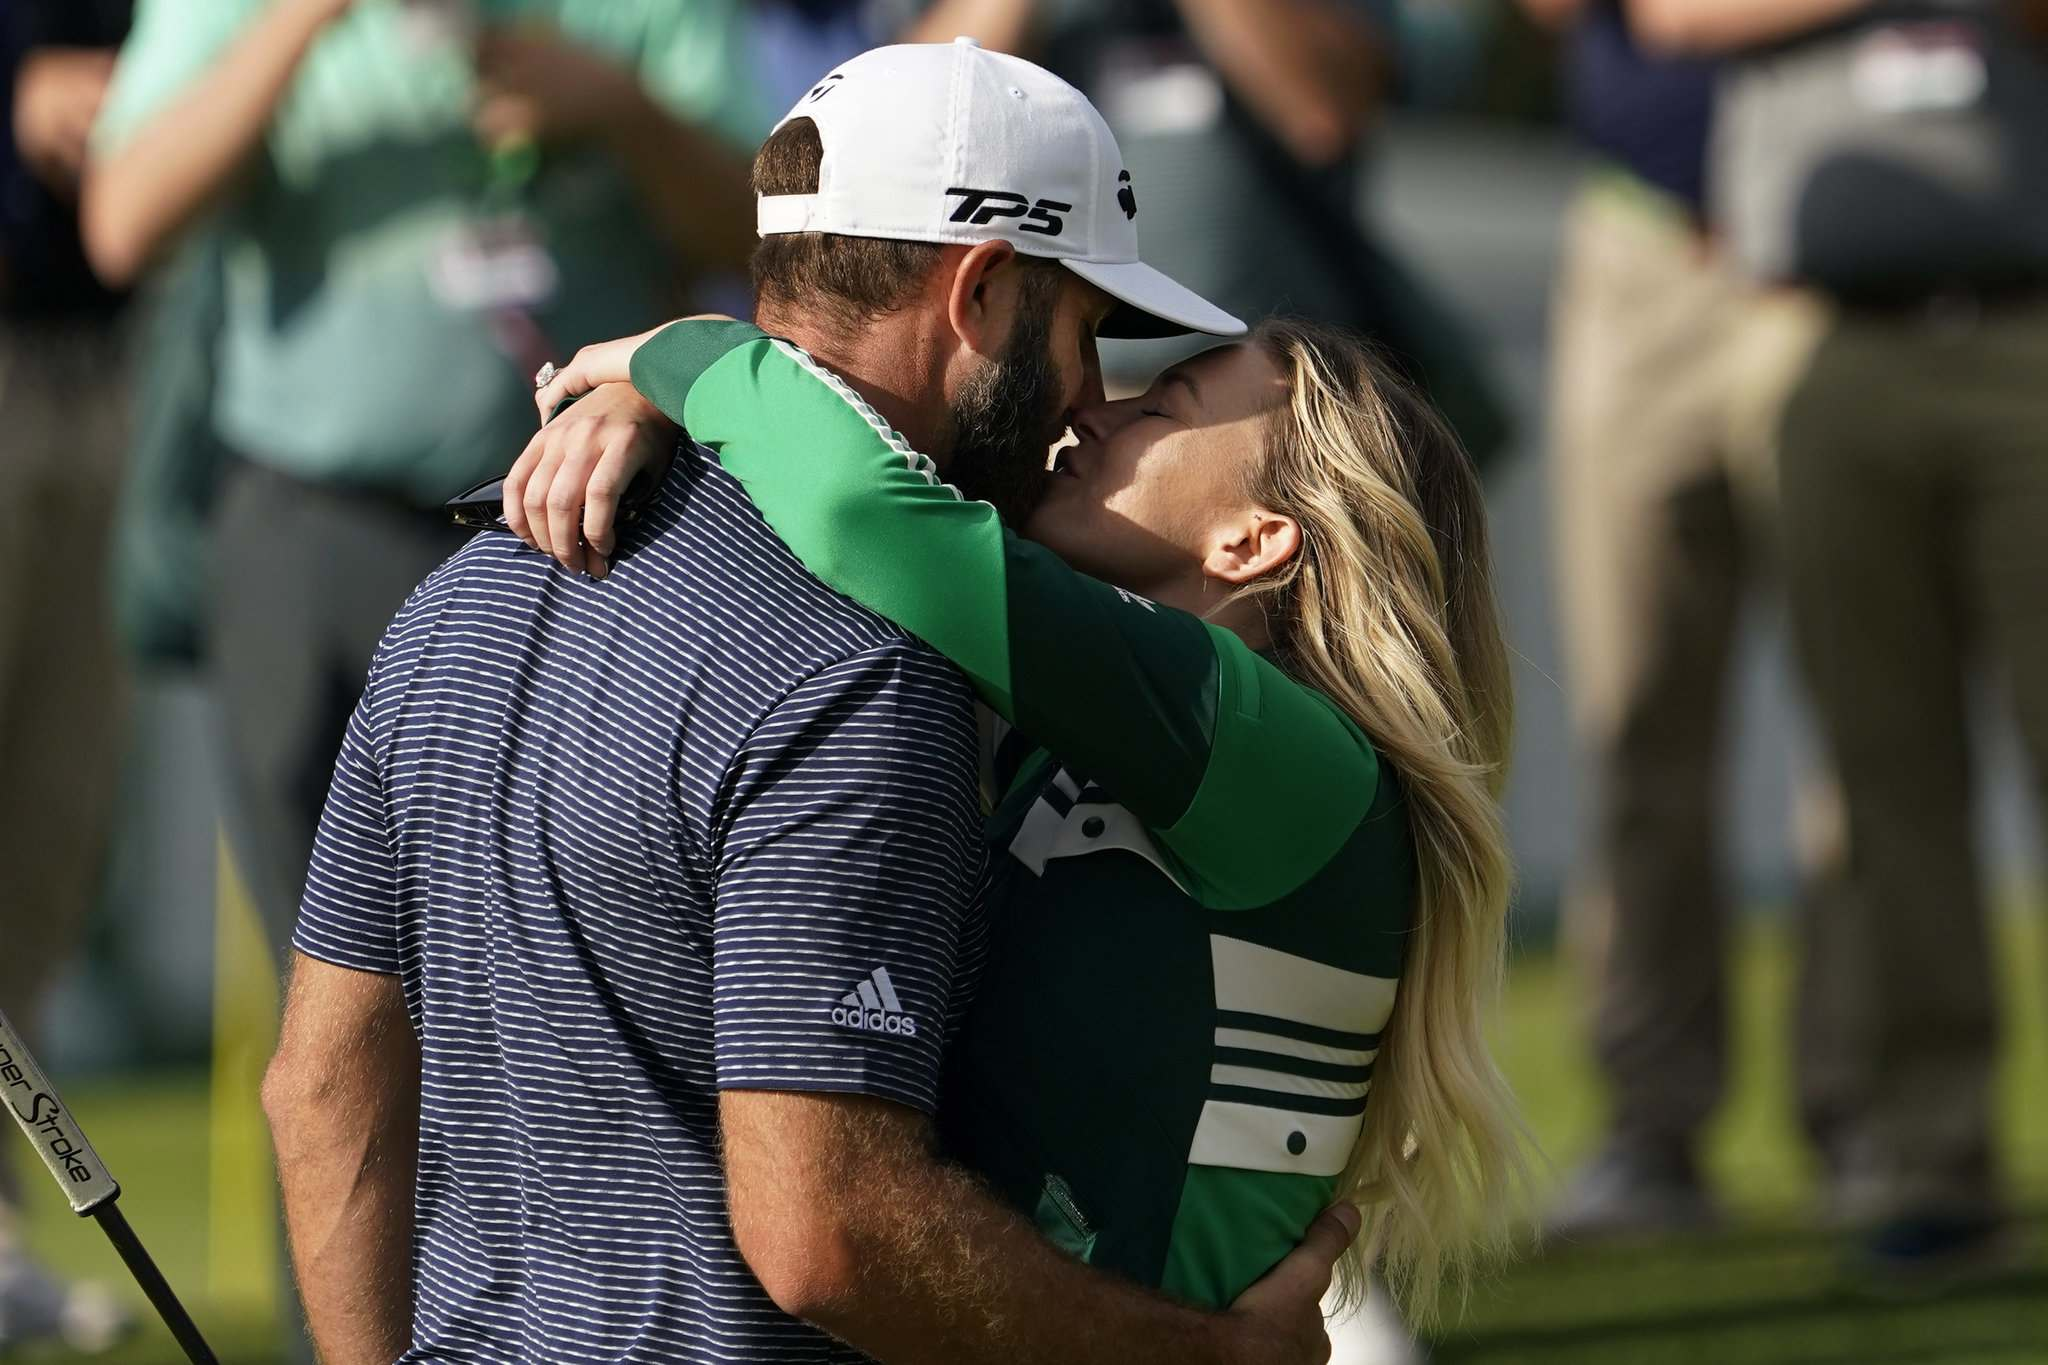 The ratings for the final round of the Masters a couple weekends ago were near an all-time low, down 51 per cent over last year, the lowest rating since 1957.